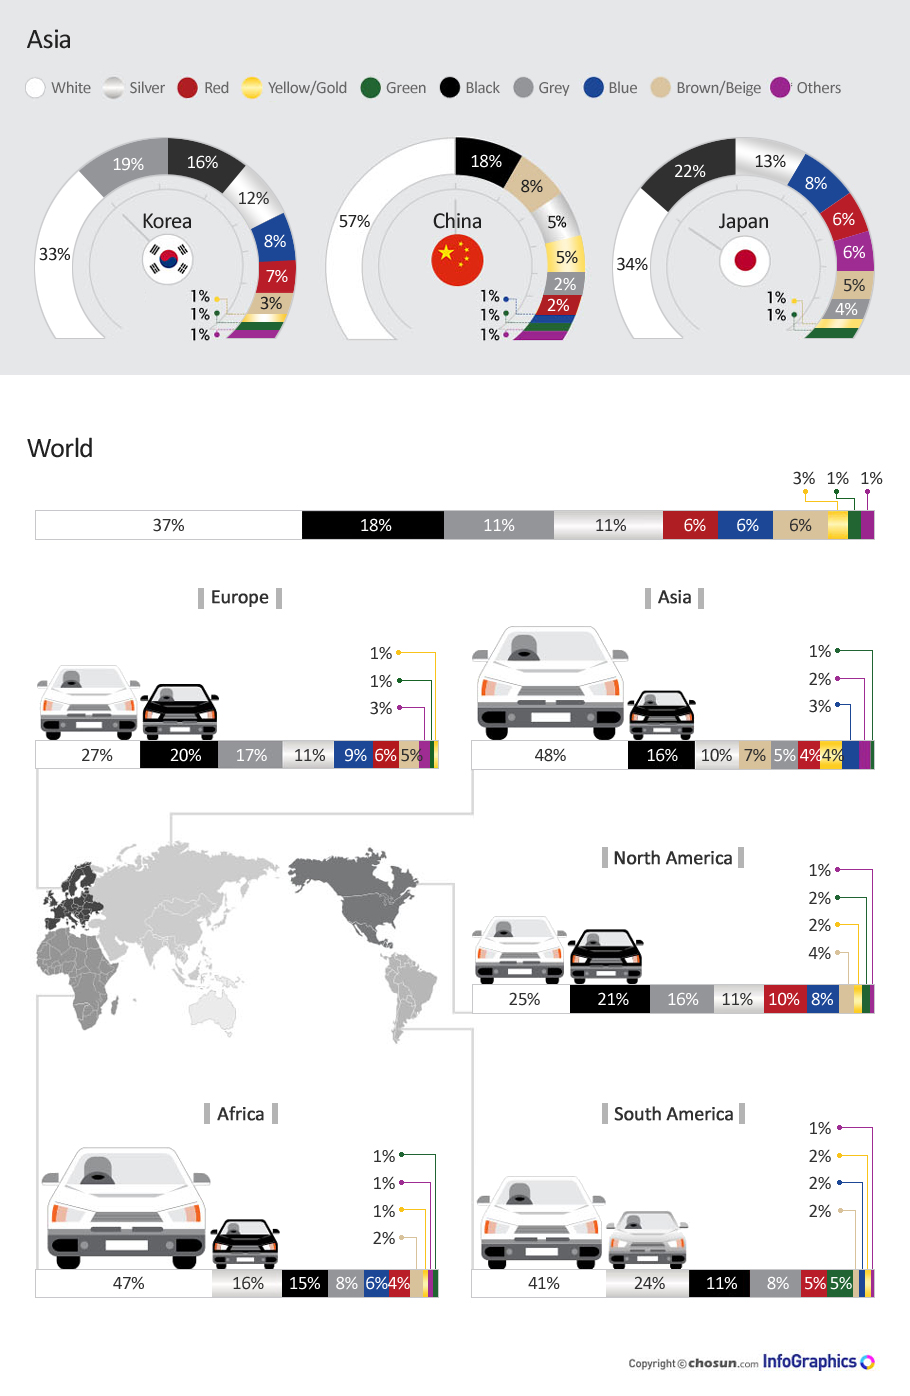 What Are the Most Popular Car Colors?